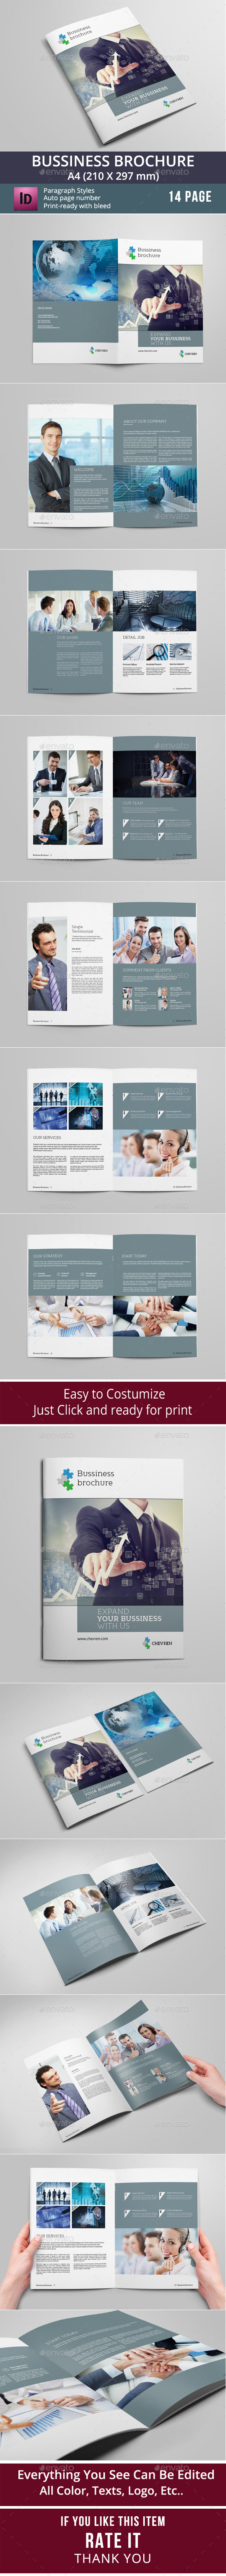 GraphicRiver Business Brochure Template 8840107